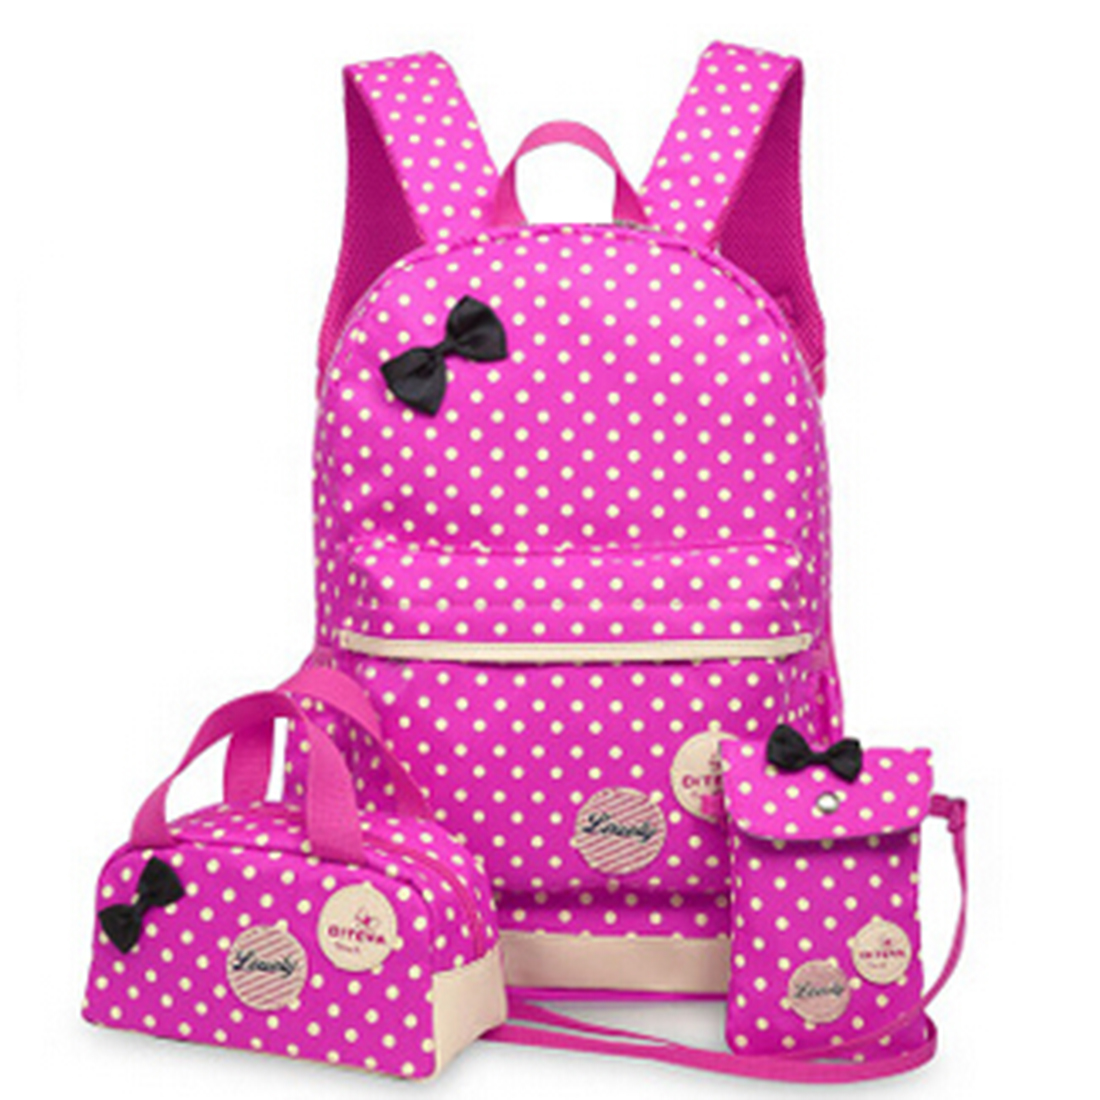 3 Pcs Set New waterproof Girl School Bags For Teenagers backpack women shoulder bags